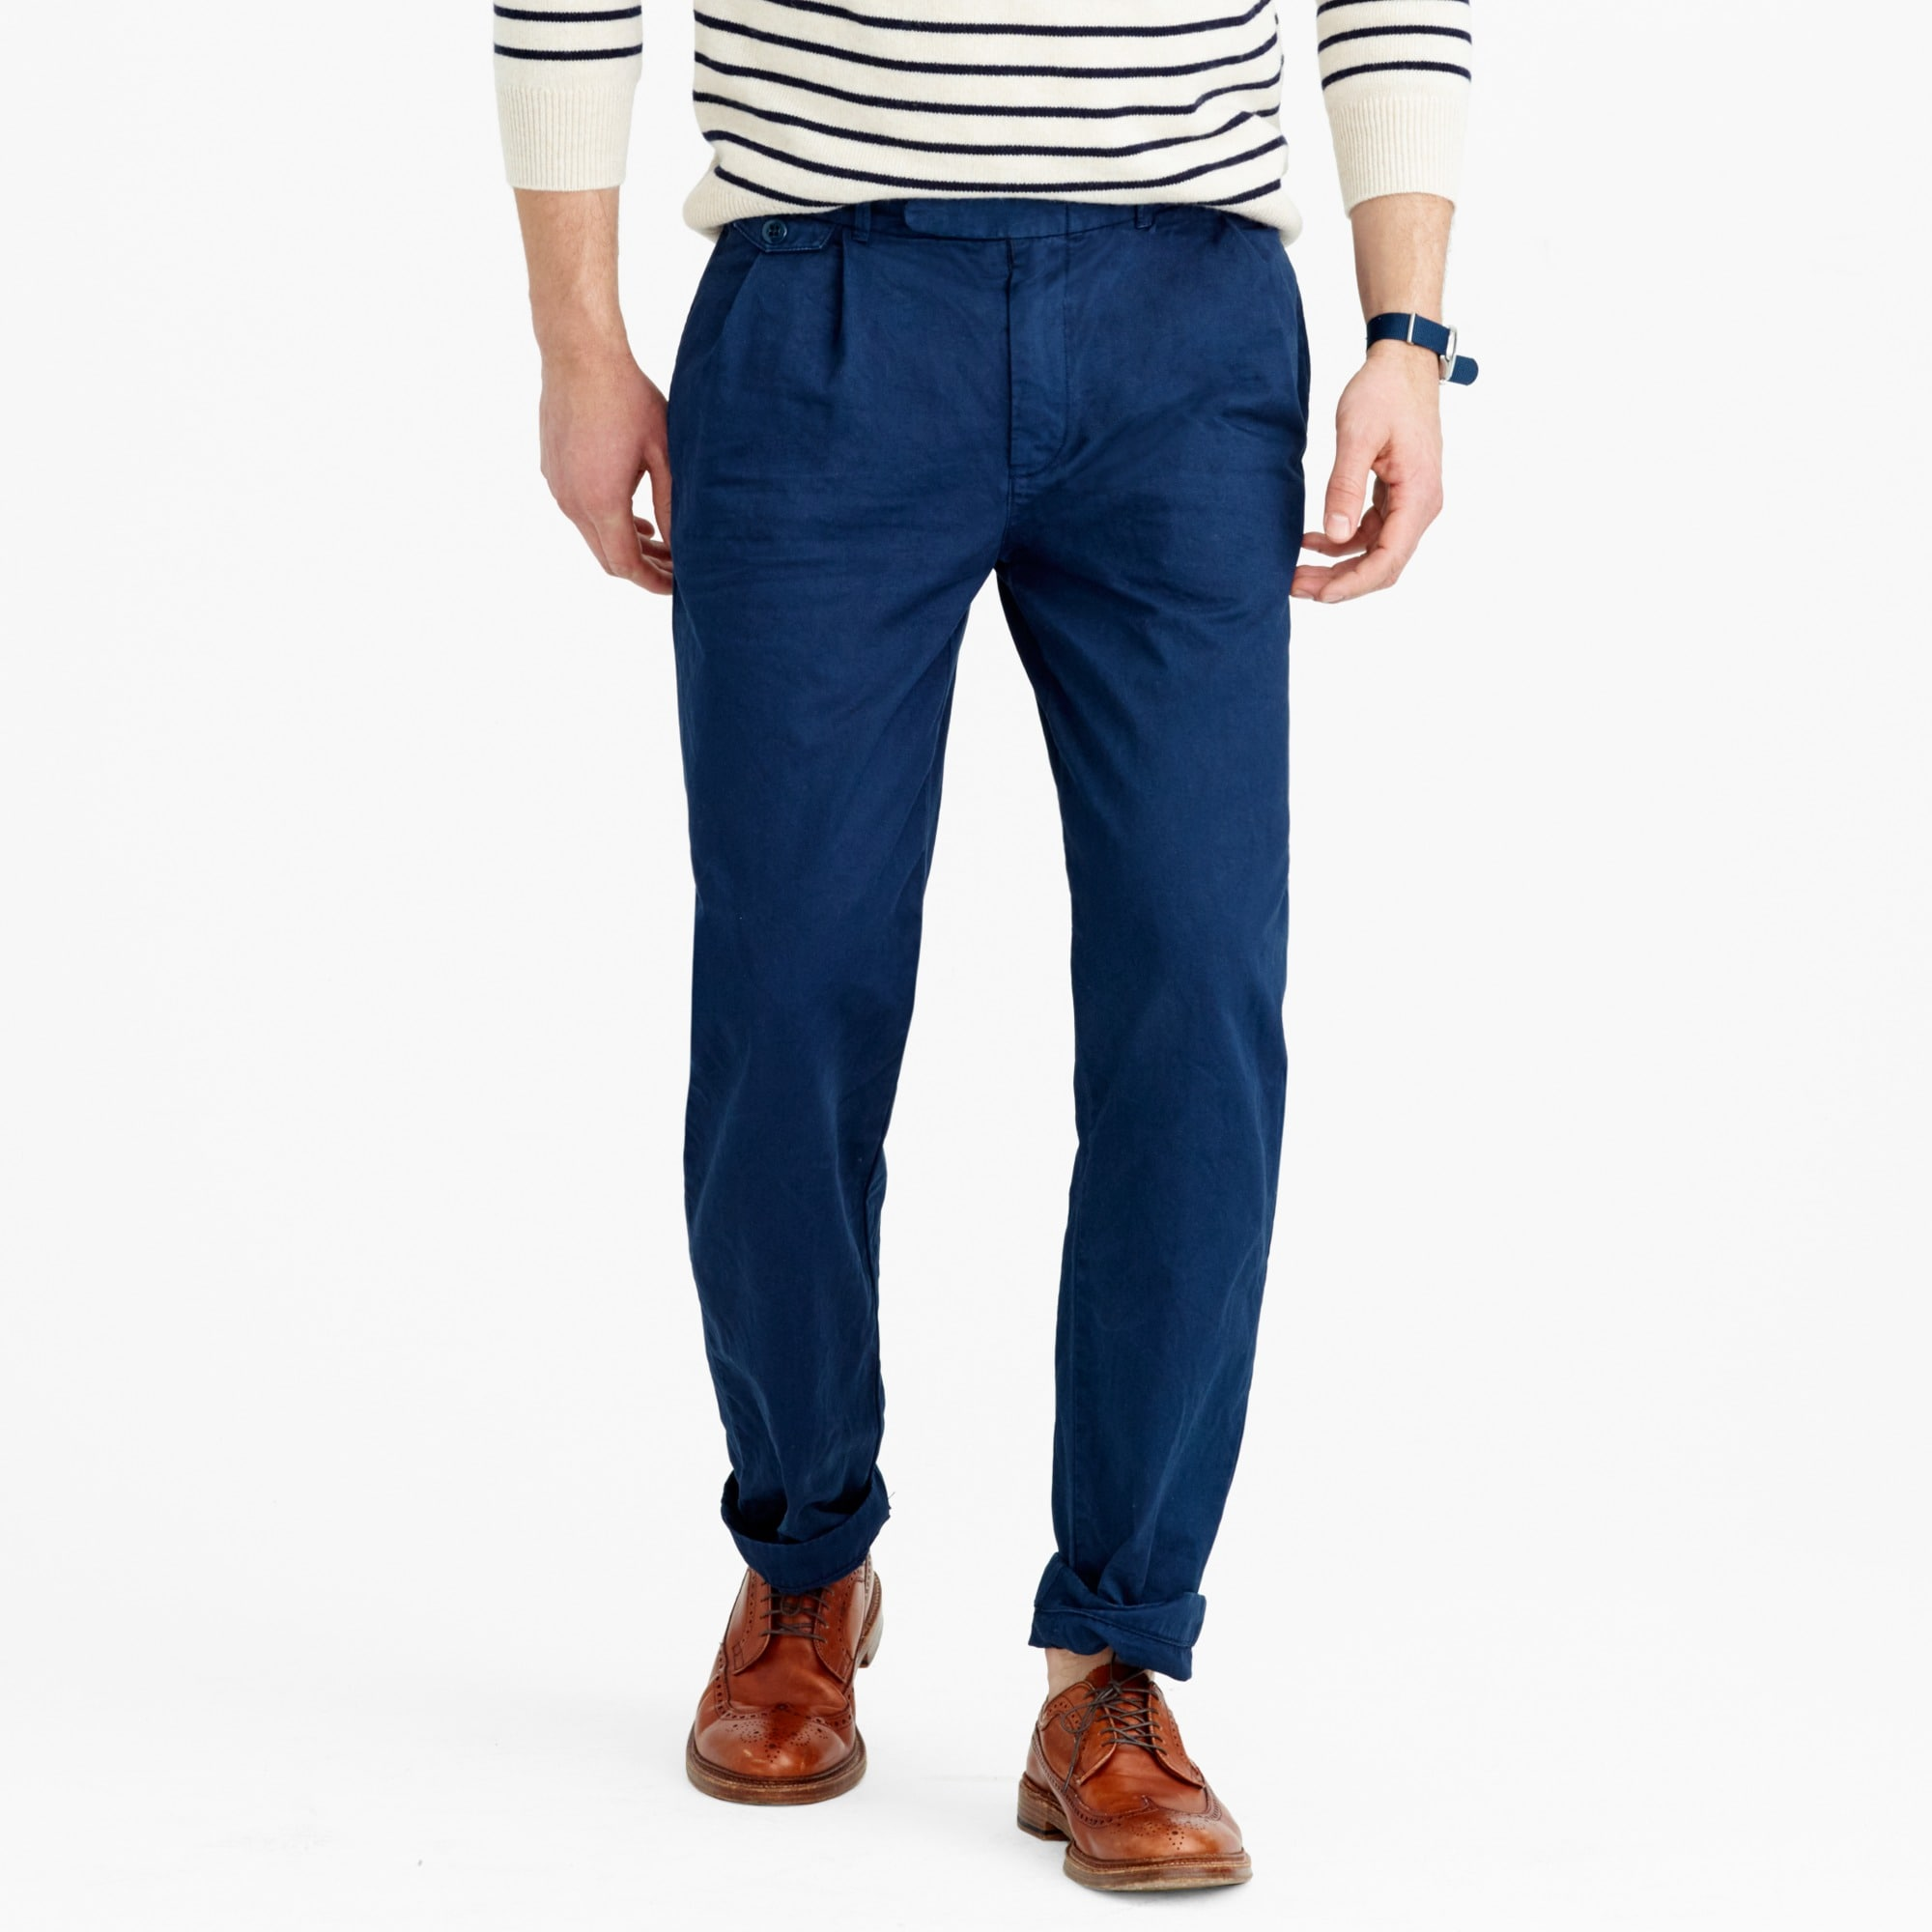 Image 2 for Wallace & Barnes double-pleated relaxed-fit military chino pant